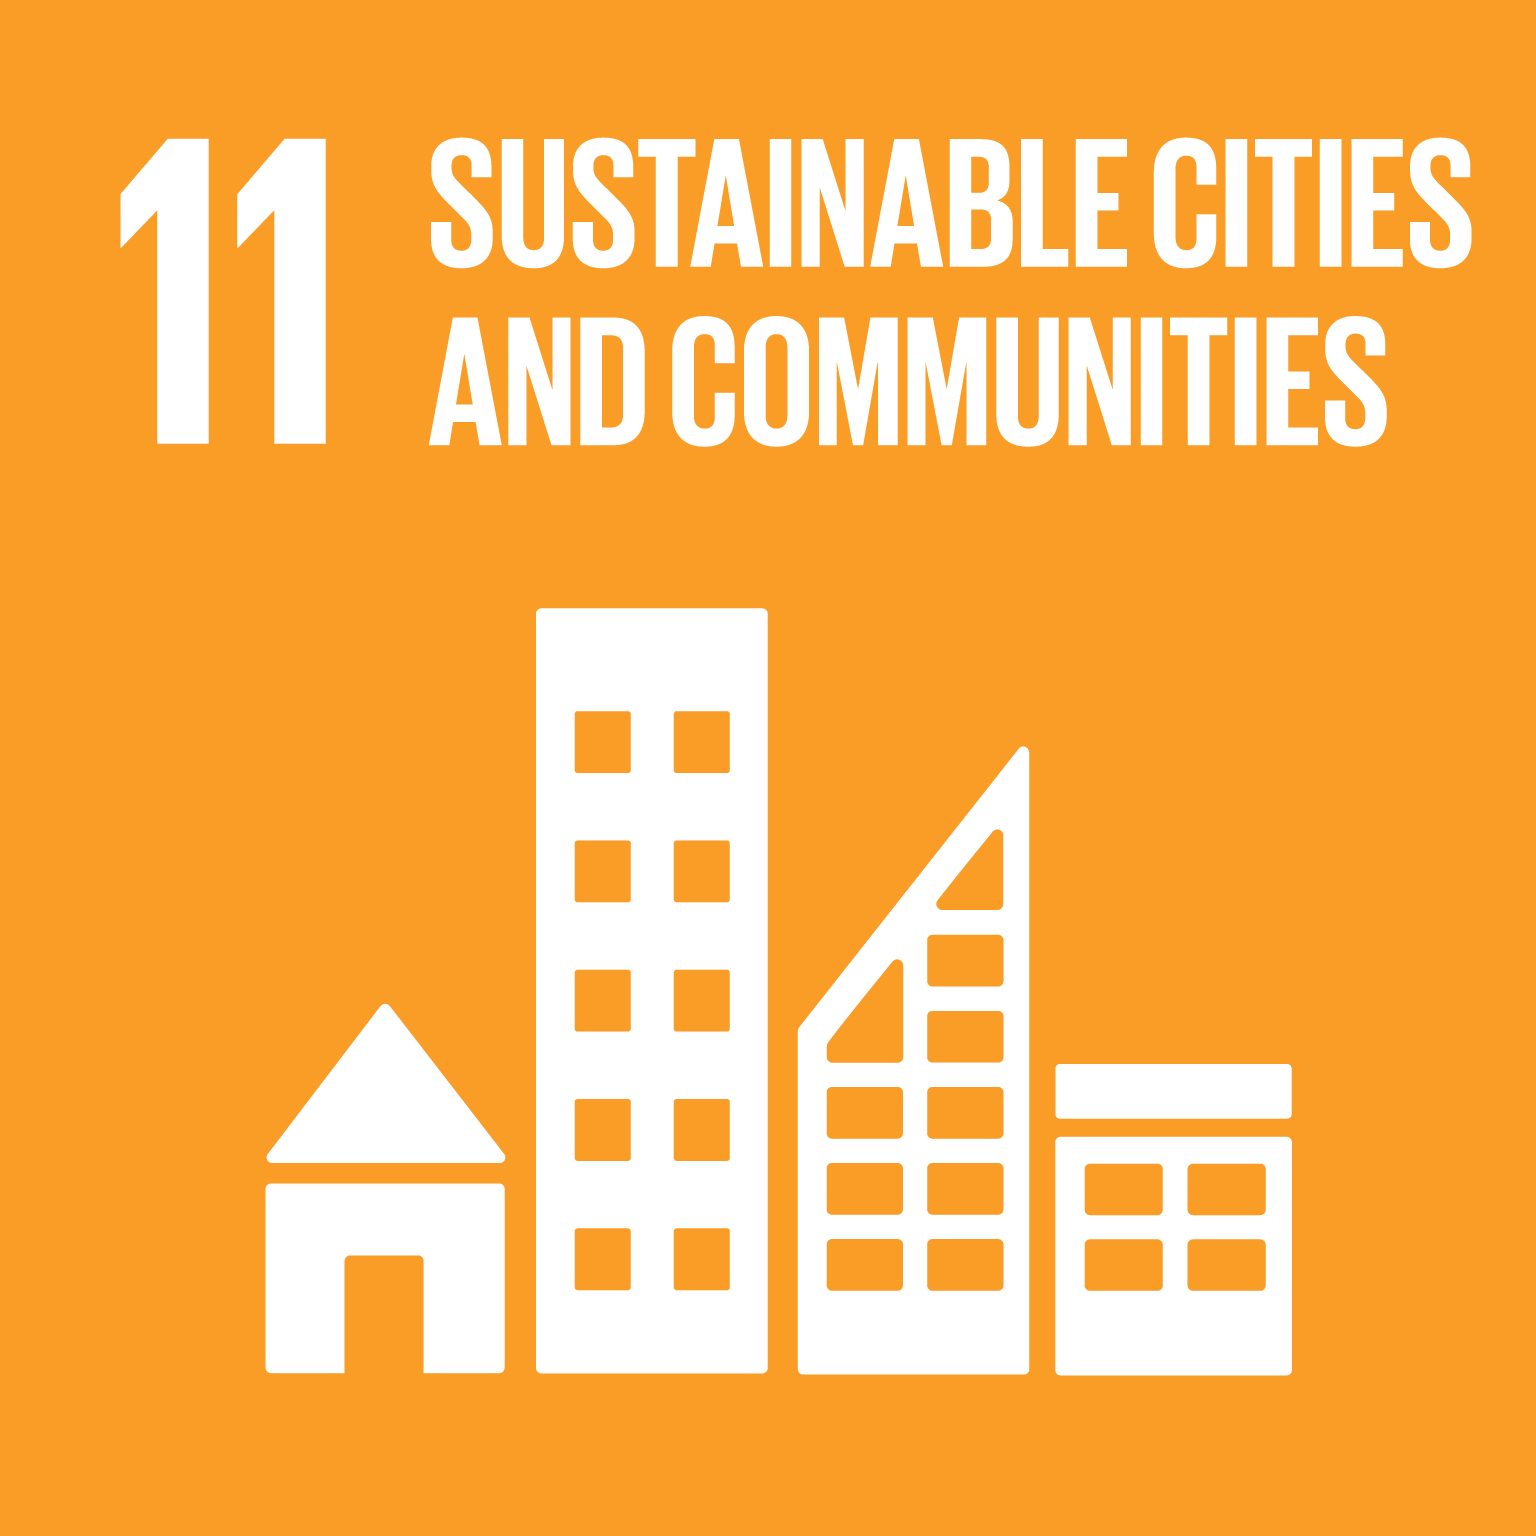 SDG Goal Number 11: Sustainable Cities and Communities